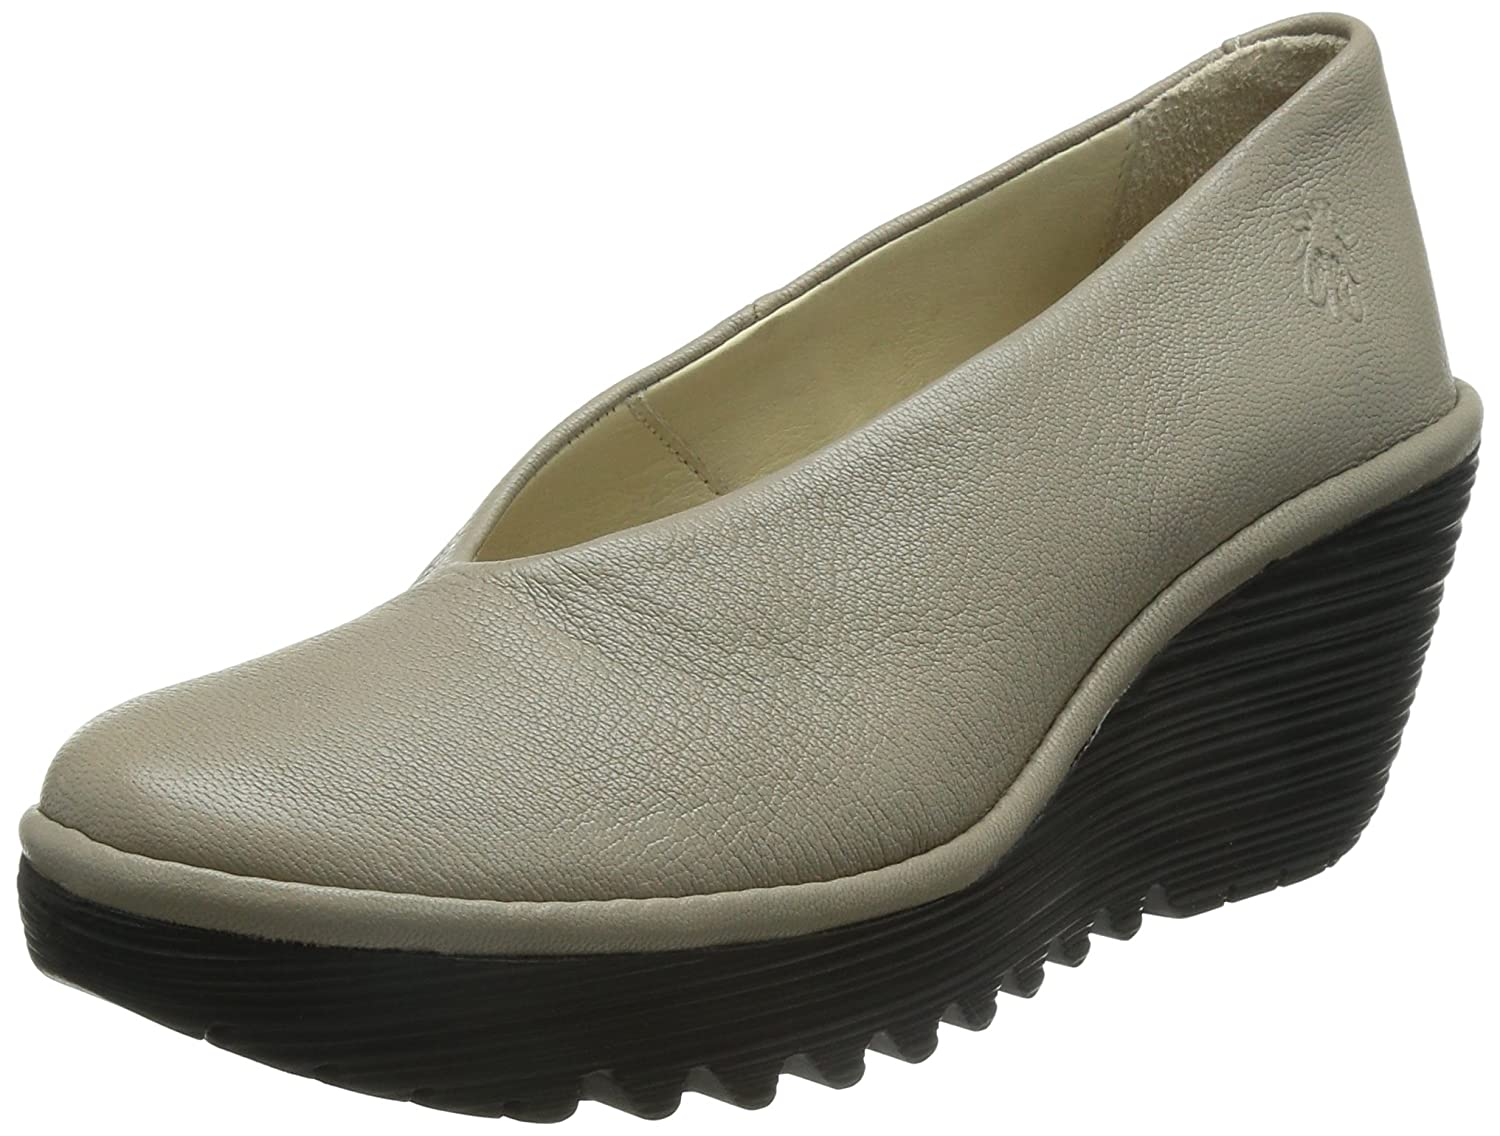 FLY London Women's Yaz Wedge Pump B014UO1BNG 37 EU/6.5-7 M US|Mushroom Mousse